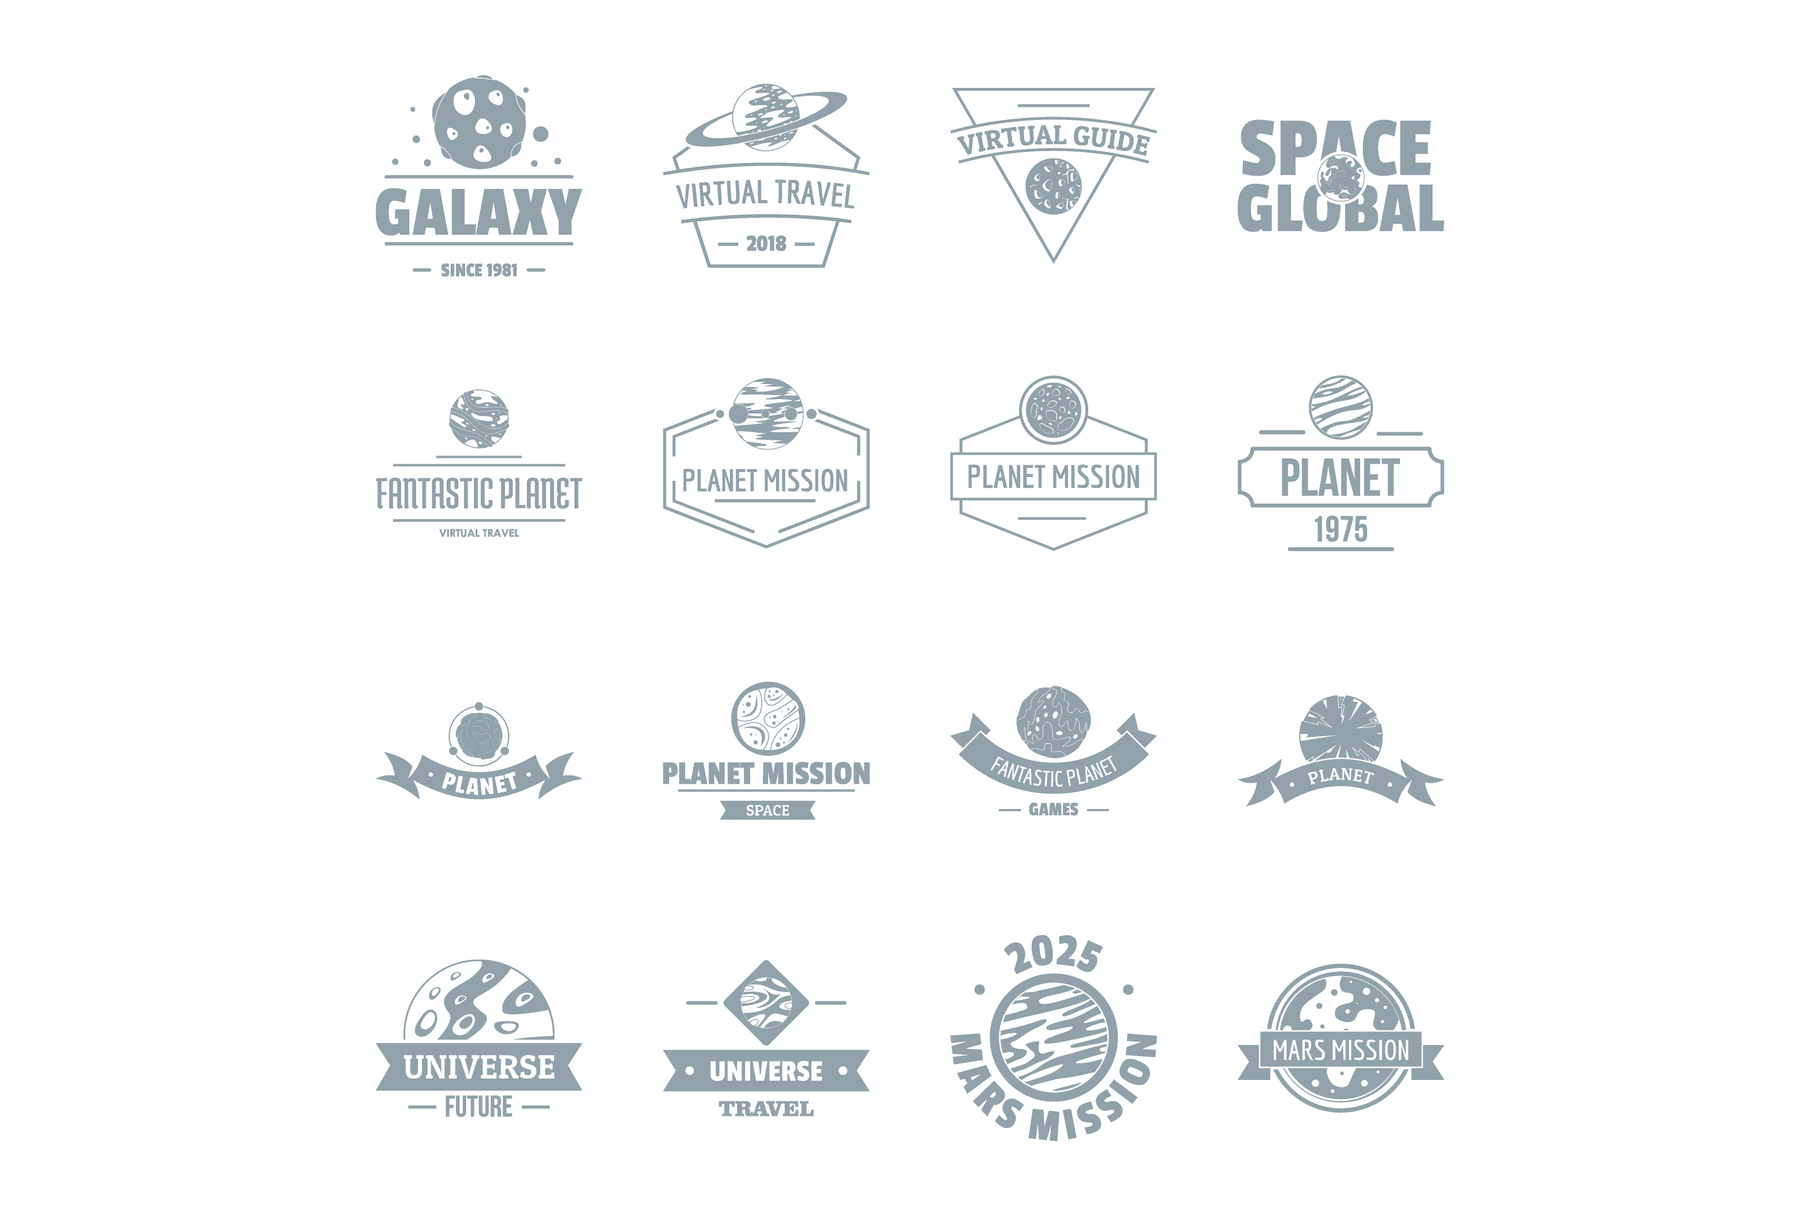 Space planet logo icons set, simple style example image 1